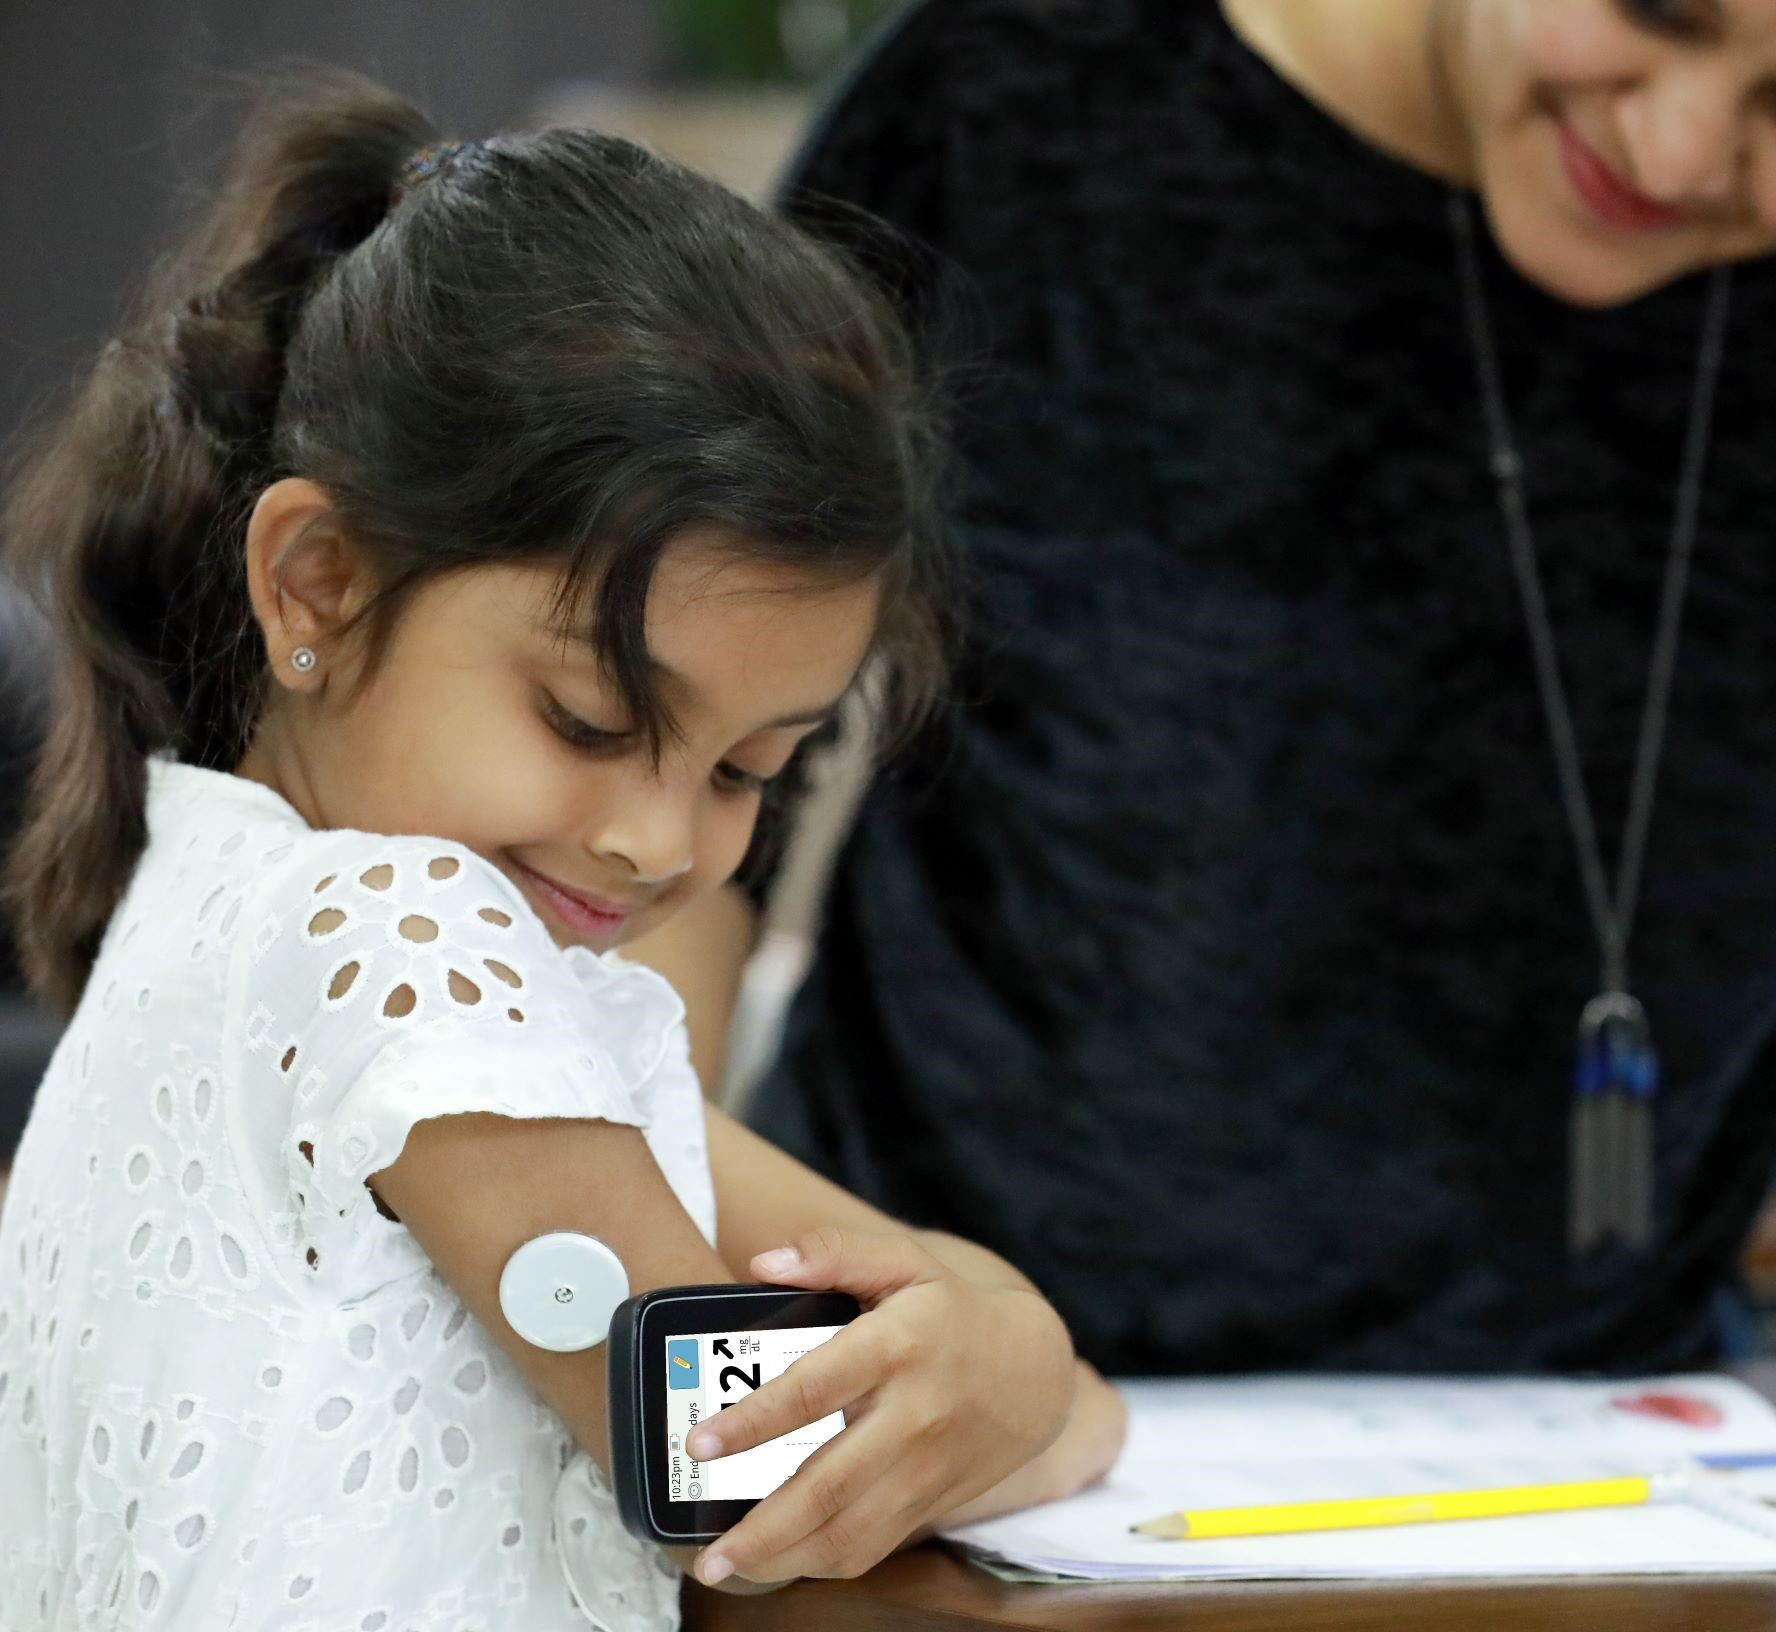 Young girl testing glucose levels